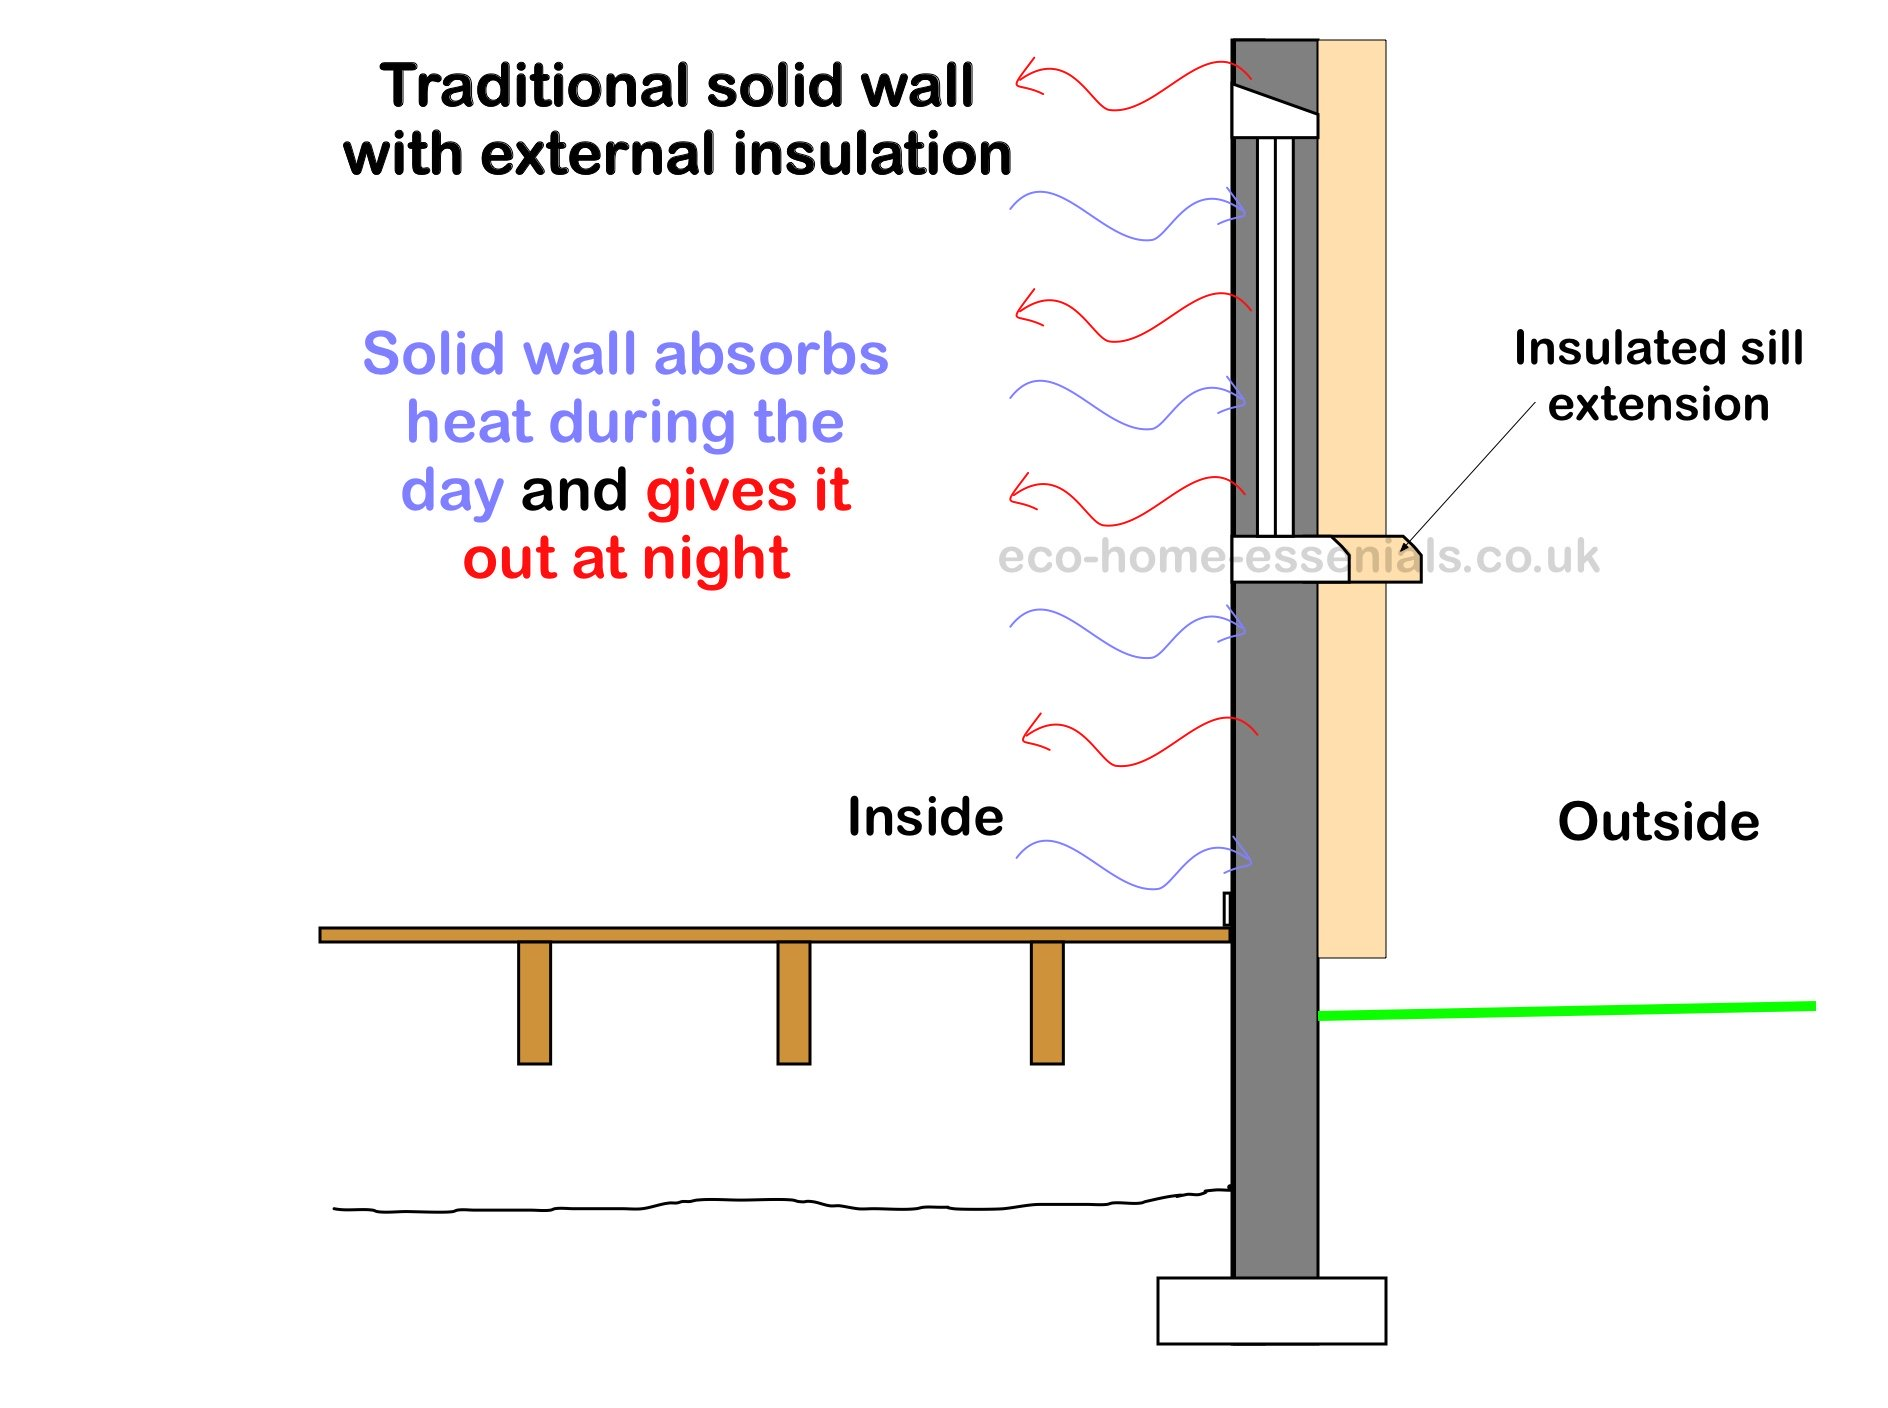 External Insulation takes advantage of thermal mass